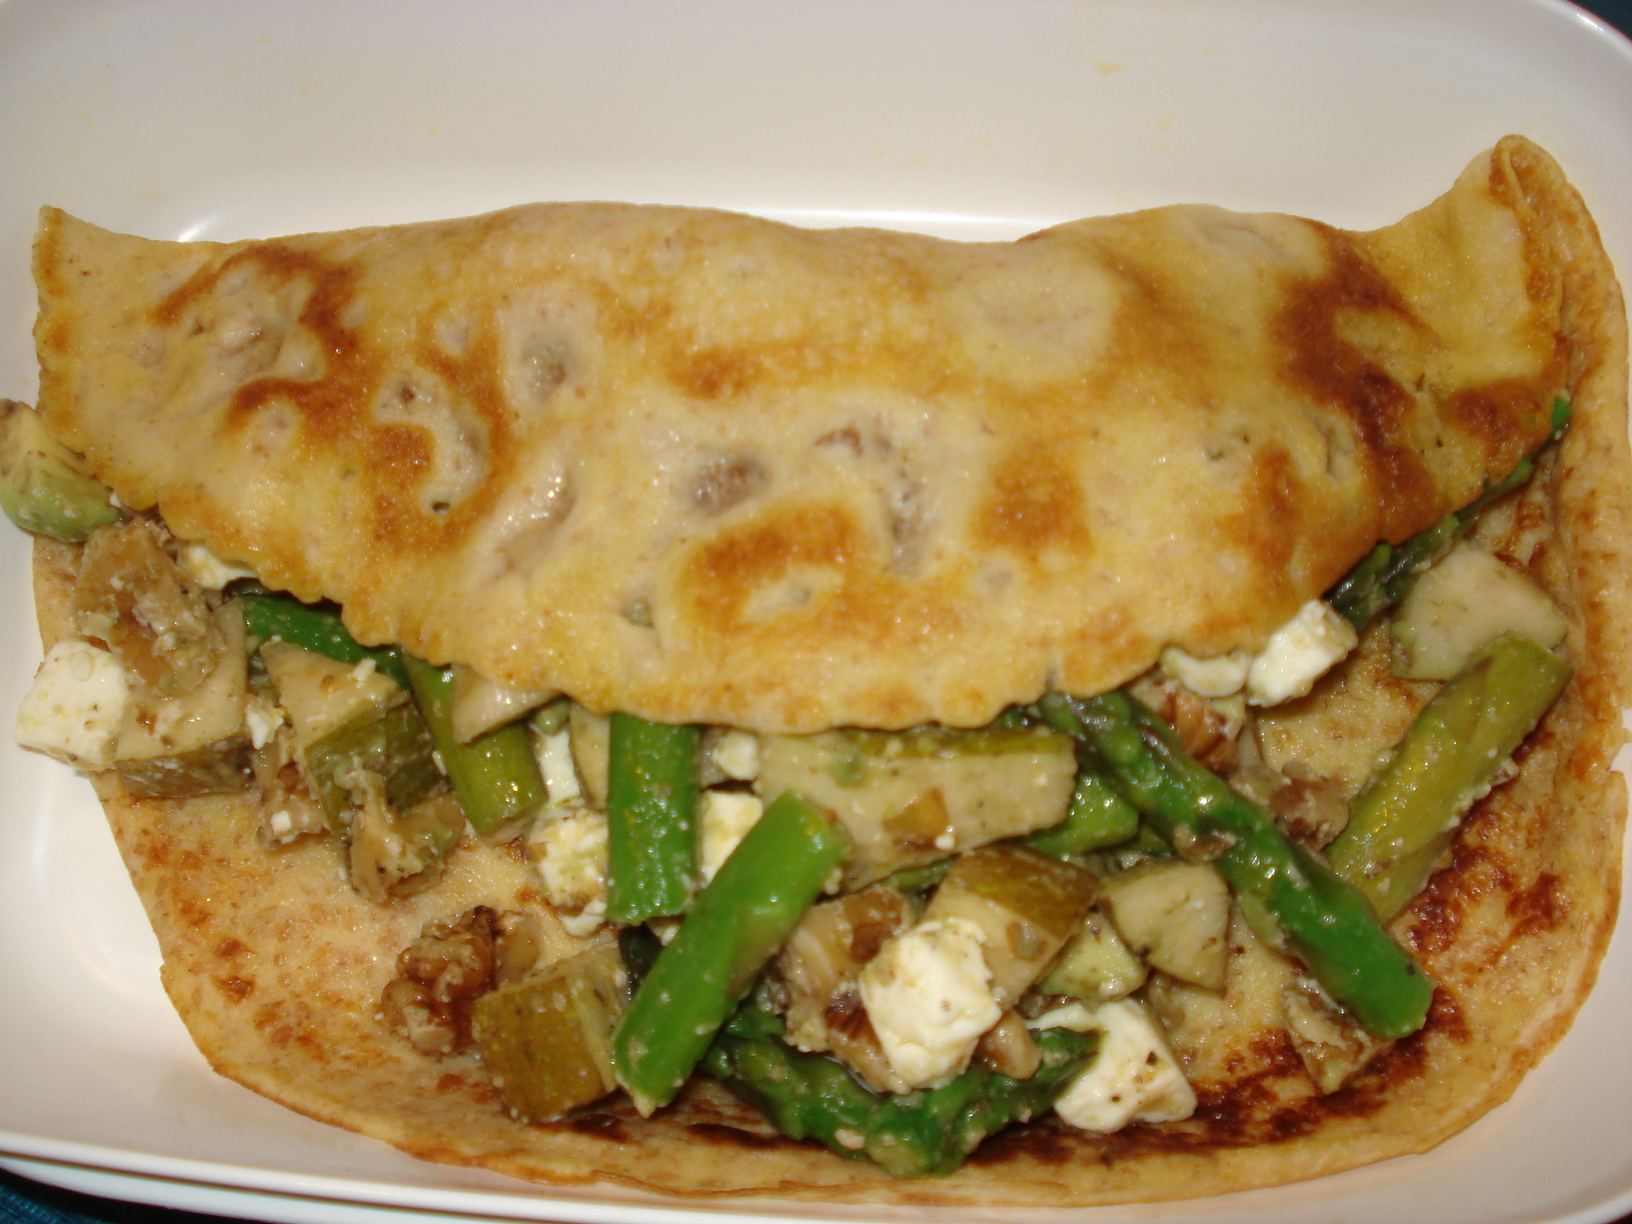 Crepes with feta cheese, walnuts, pears, asparagus and avocado